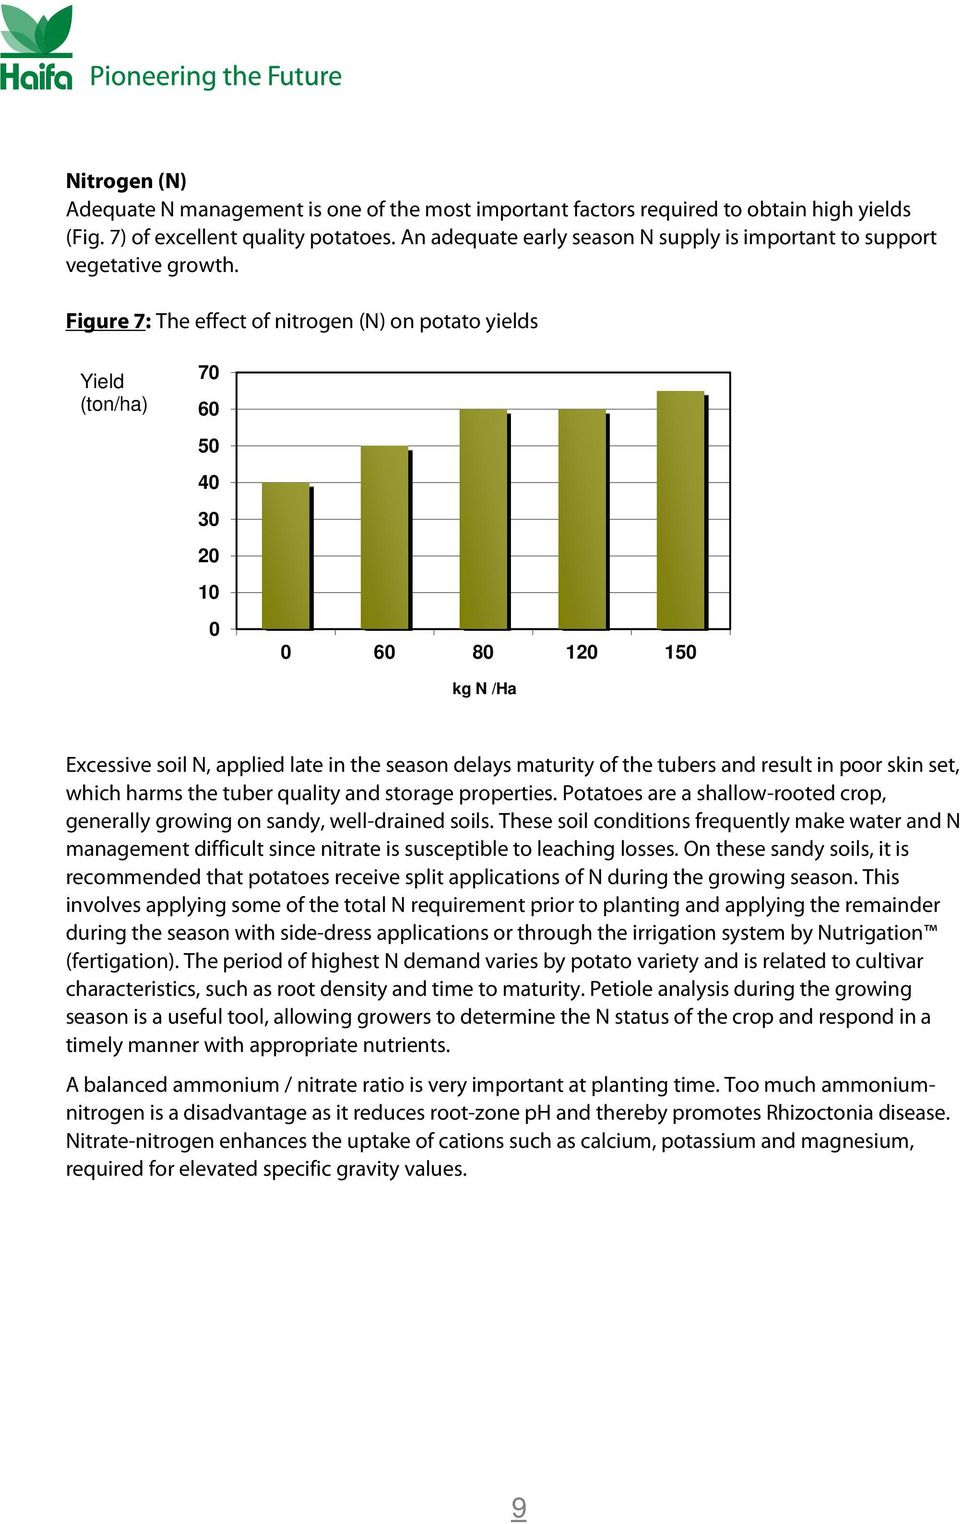 Figure 7: The effect of nitrogen (N) on potato yields Yield (ton/ha) 70 60 50 40 30 20 10 0 0 60 80 120 150 kg N /Ha Excessive soil N, applied late in the season delays maturity of the tubers and